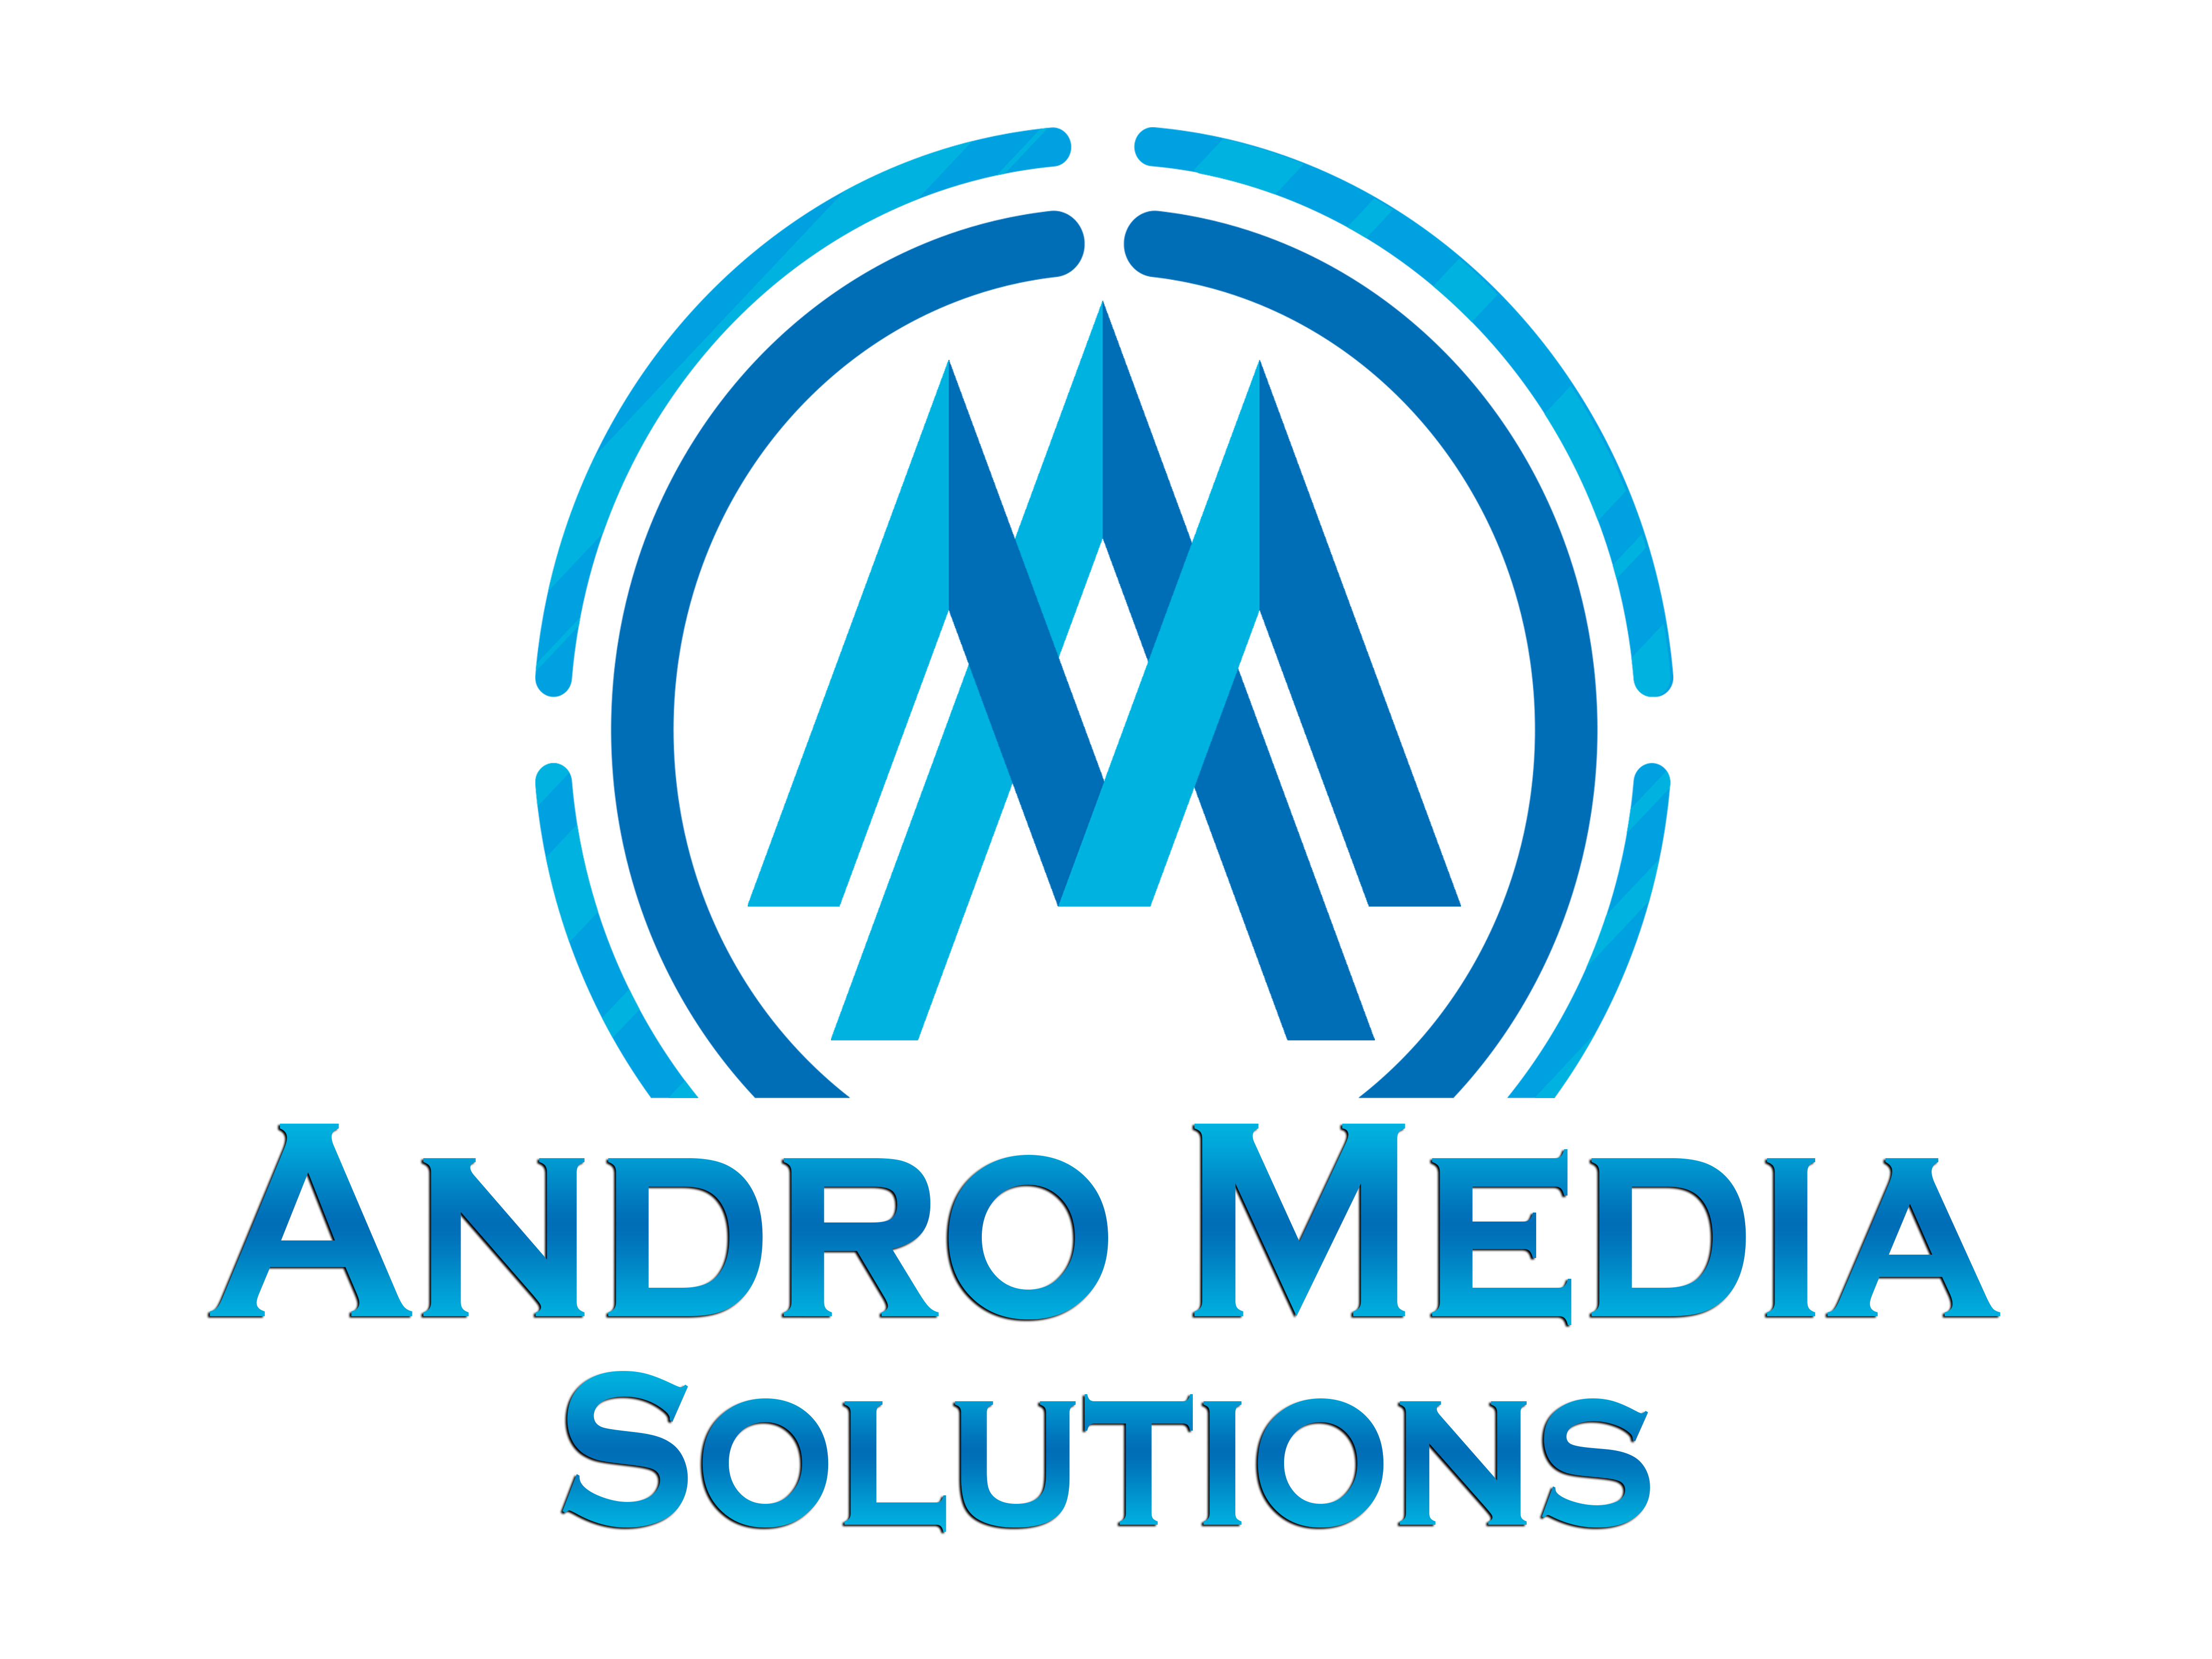 AndroMediaSolutions